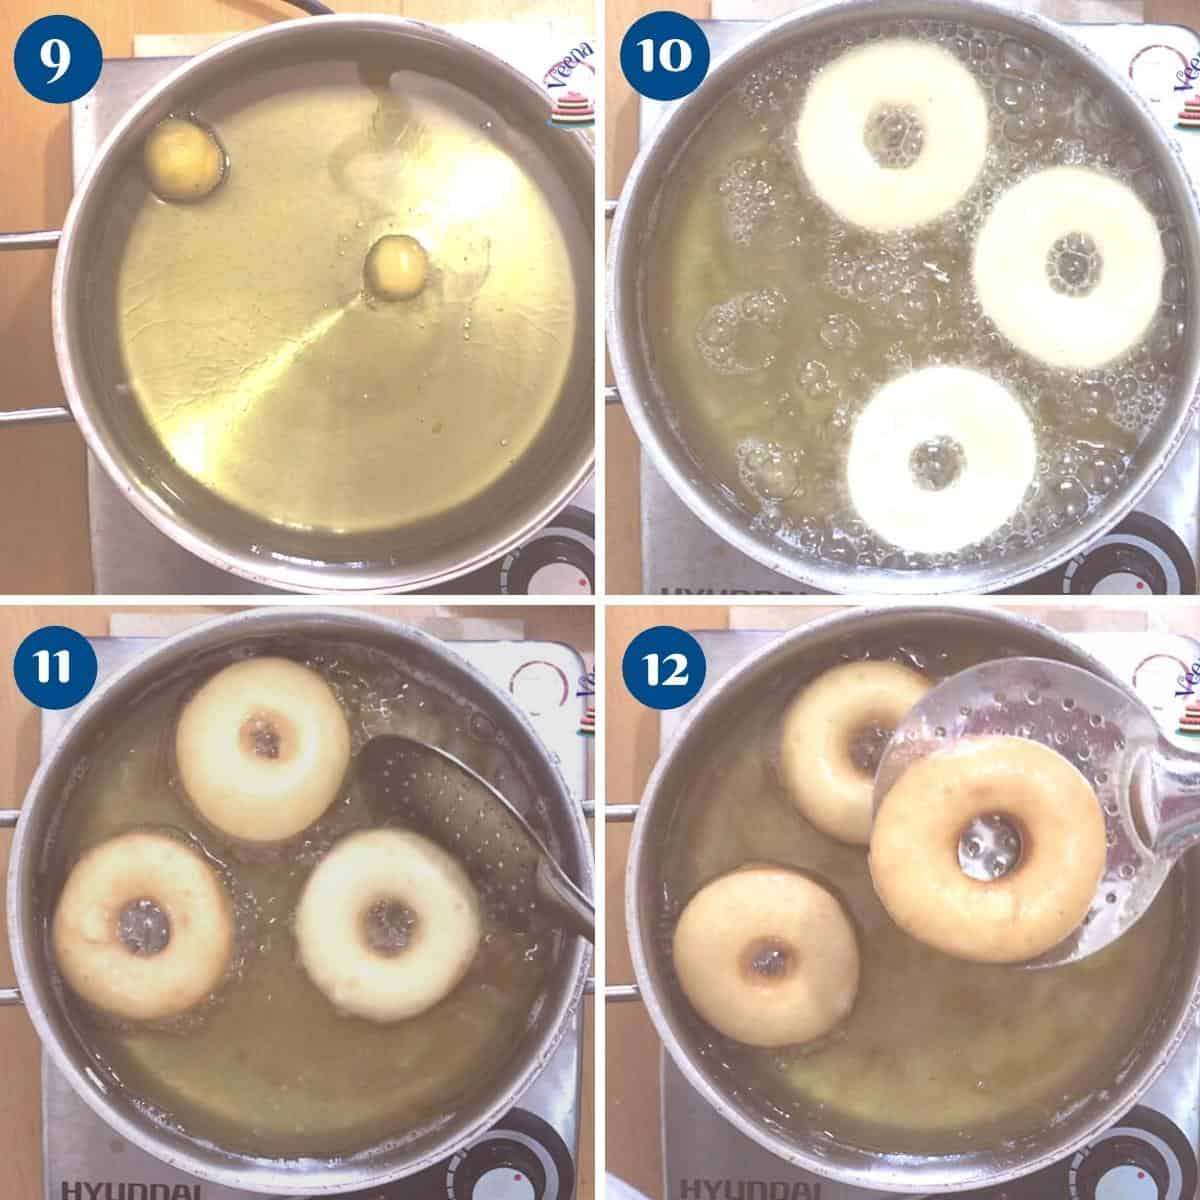 Progress pictures deep frying the donuts.